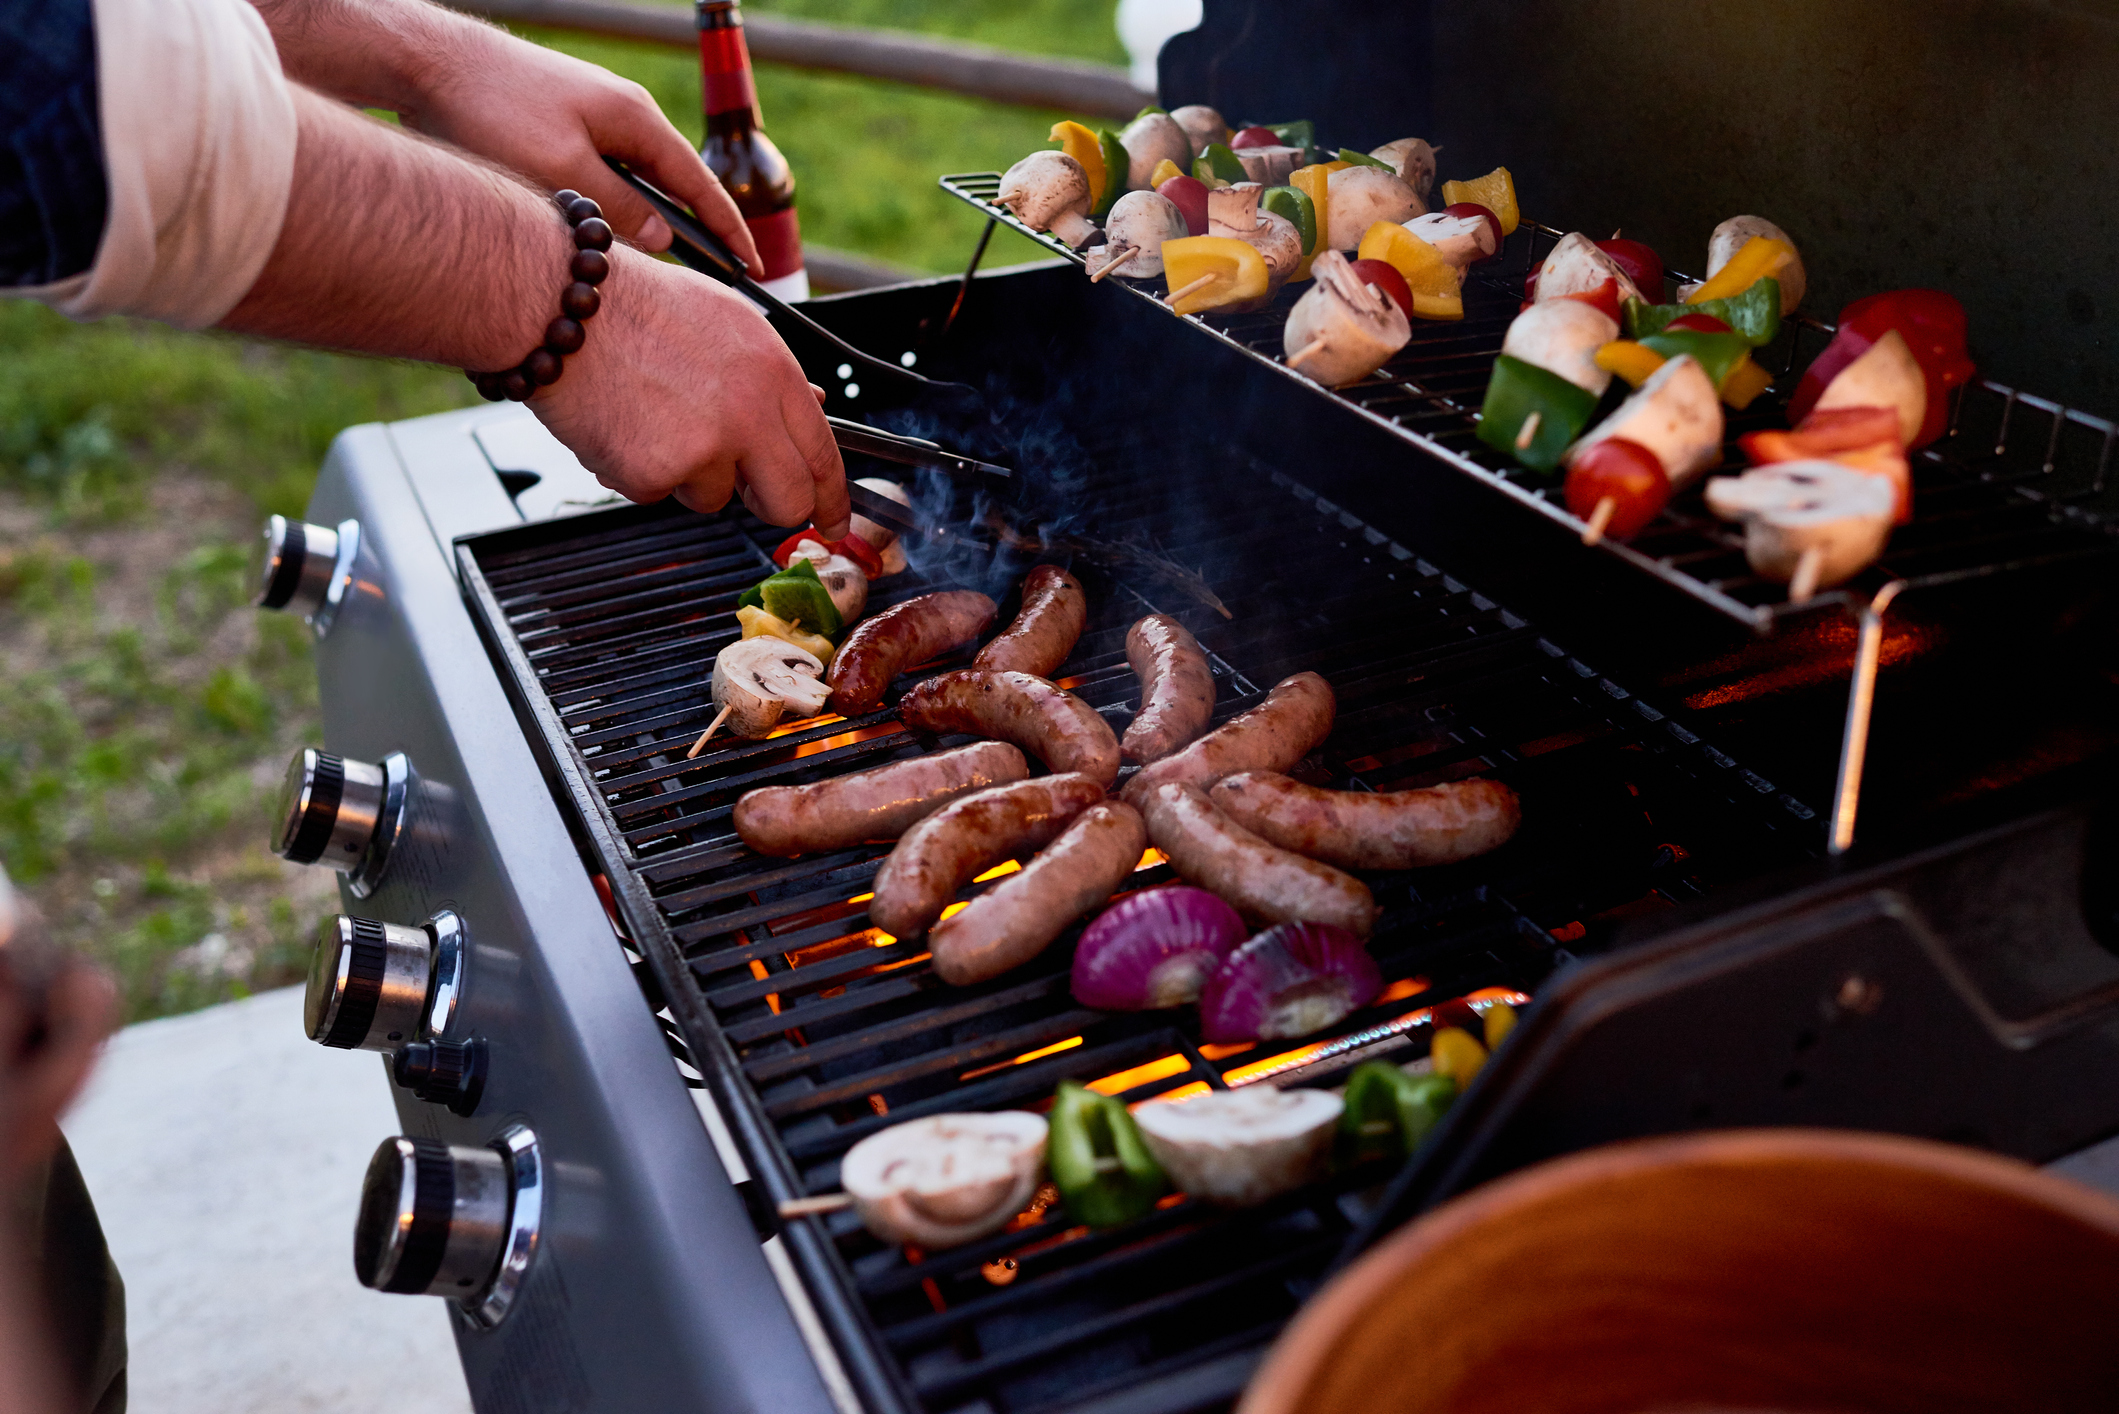 Chef cooking sausages and vegetables on skewers outdoors